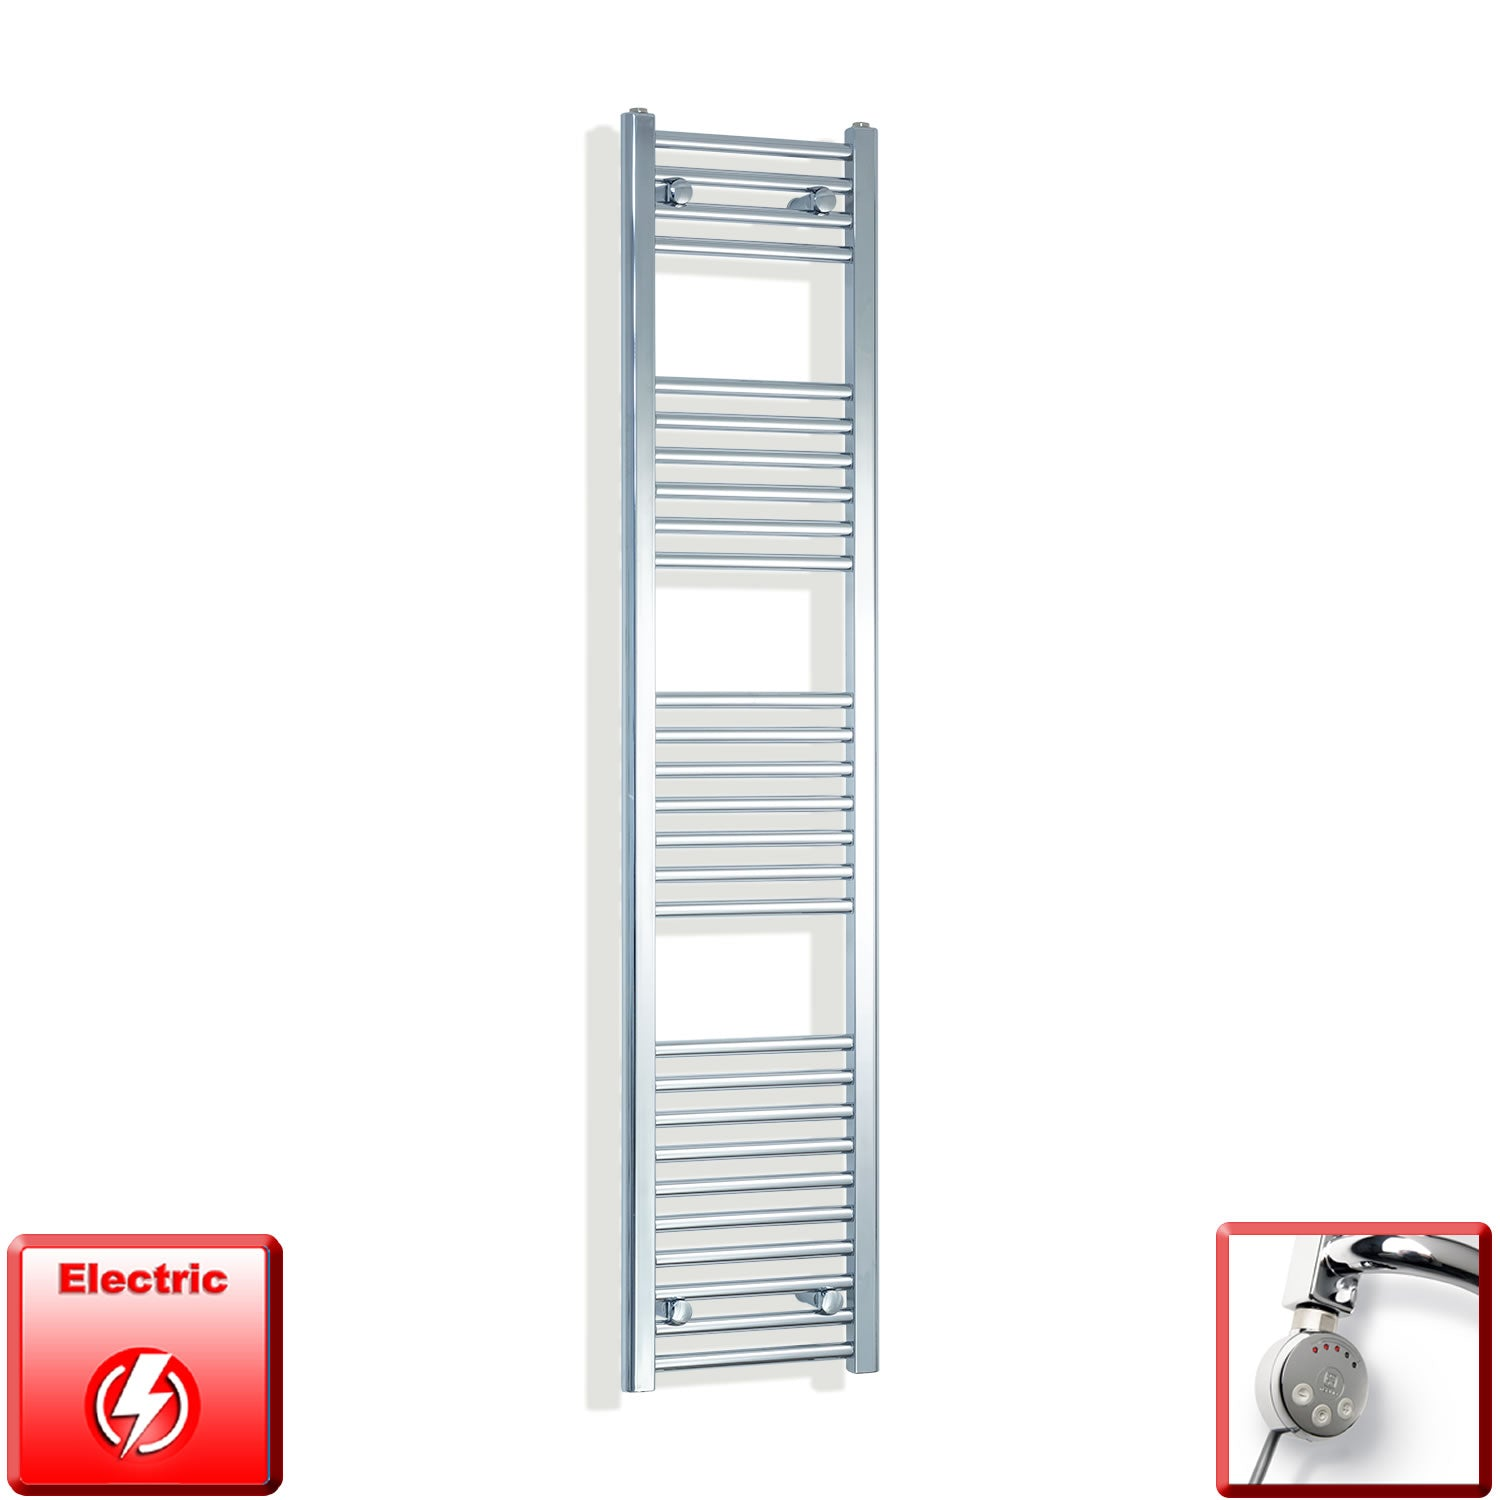 300mm Wide 1600mm High Pre-Filled Chrome Electric Towel Rail Radiator With Thermostatic MEG Element